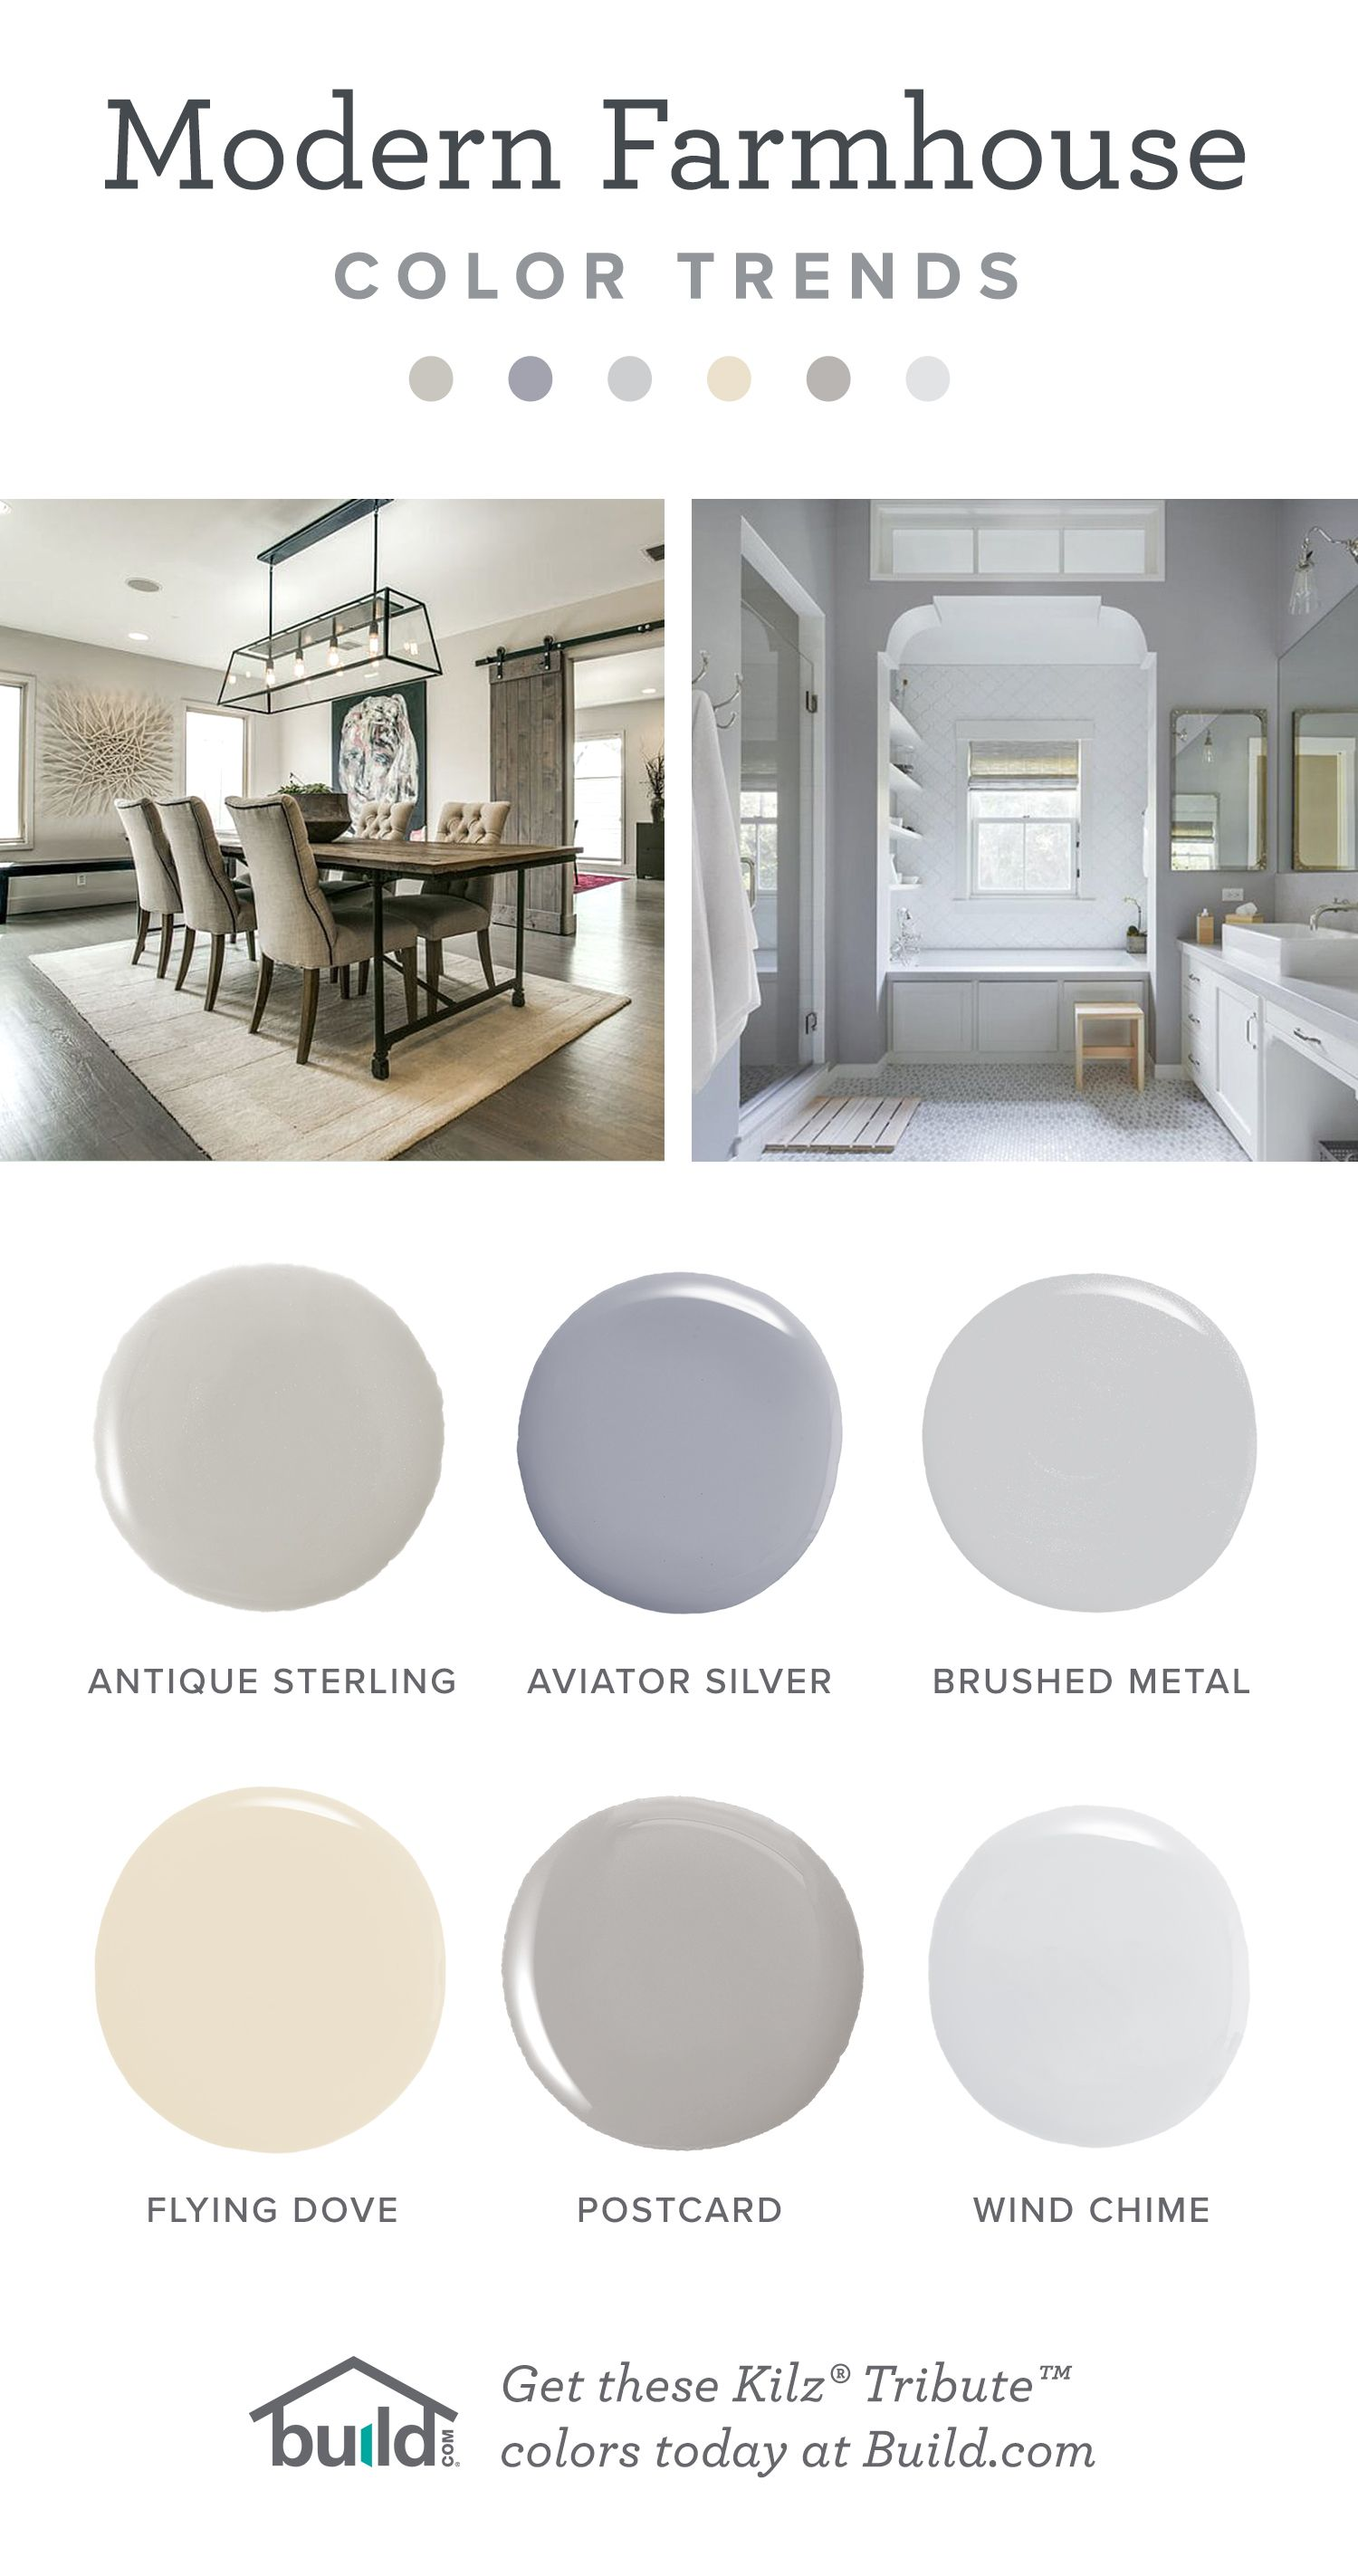 Modern Farmhouse Paint Colors By Kilz Paint Colors For Living Room Farm House Living Room Farm House Colors